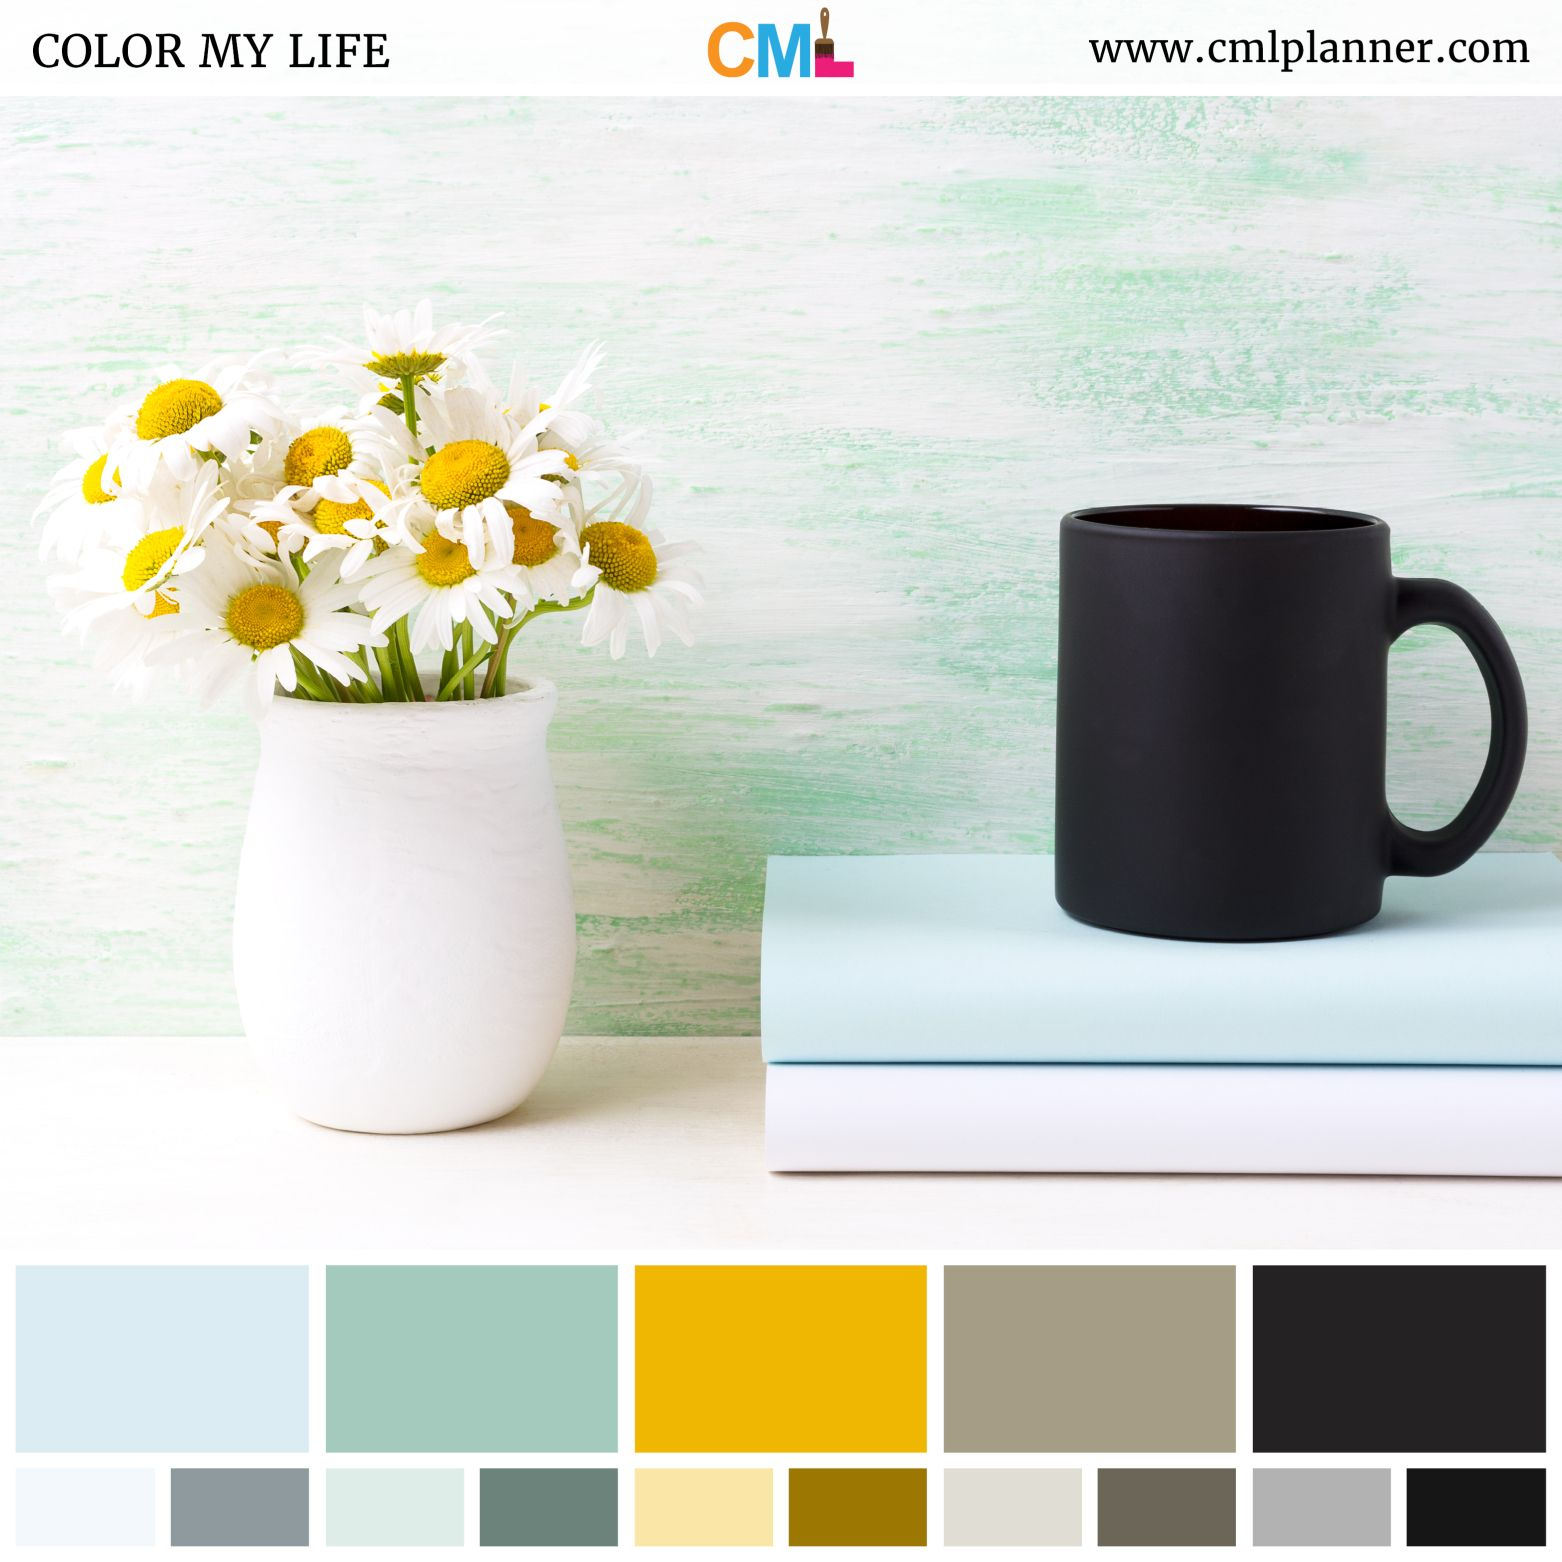 Todays Dose Of Color Inspiration Is A Relaxing Color Palette